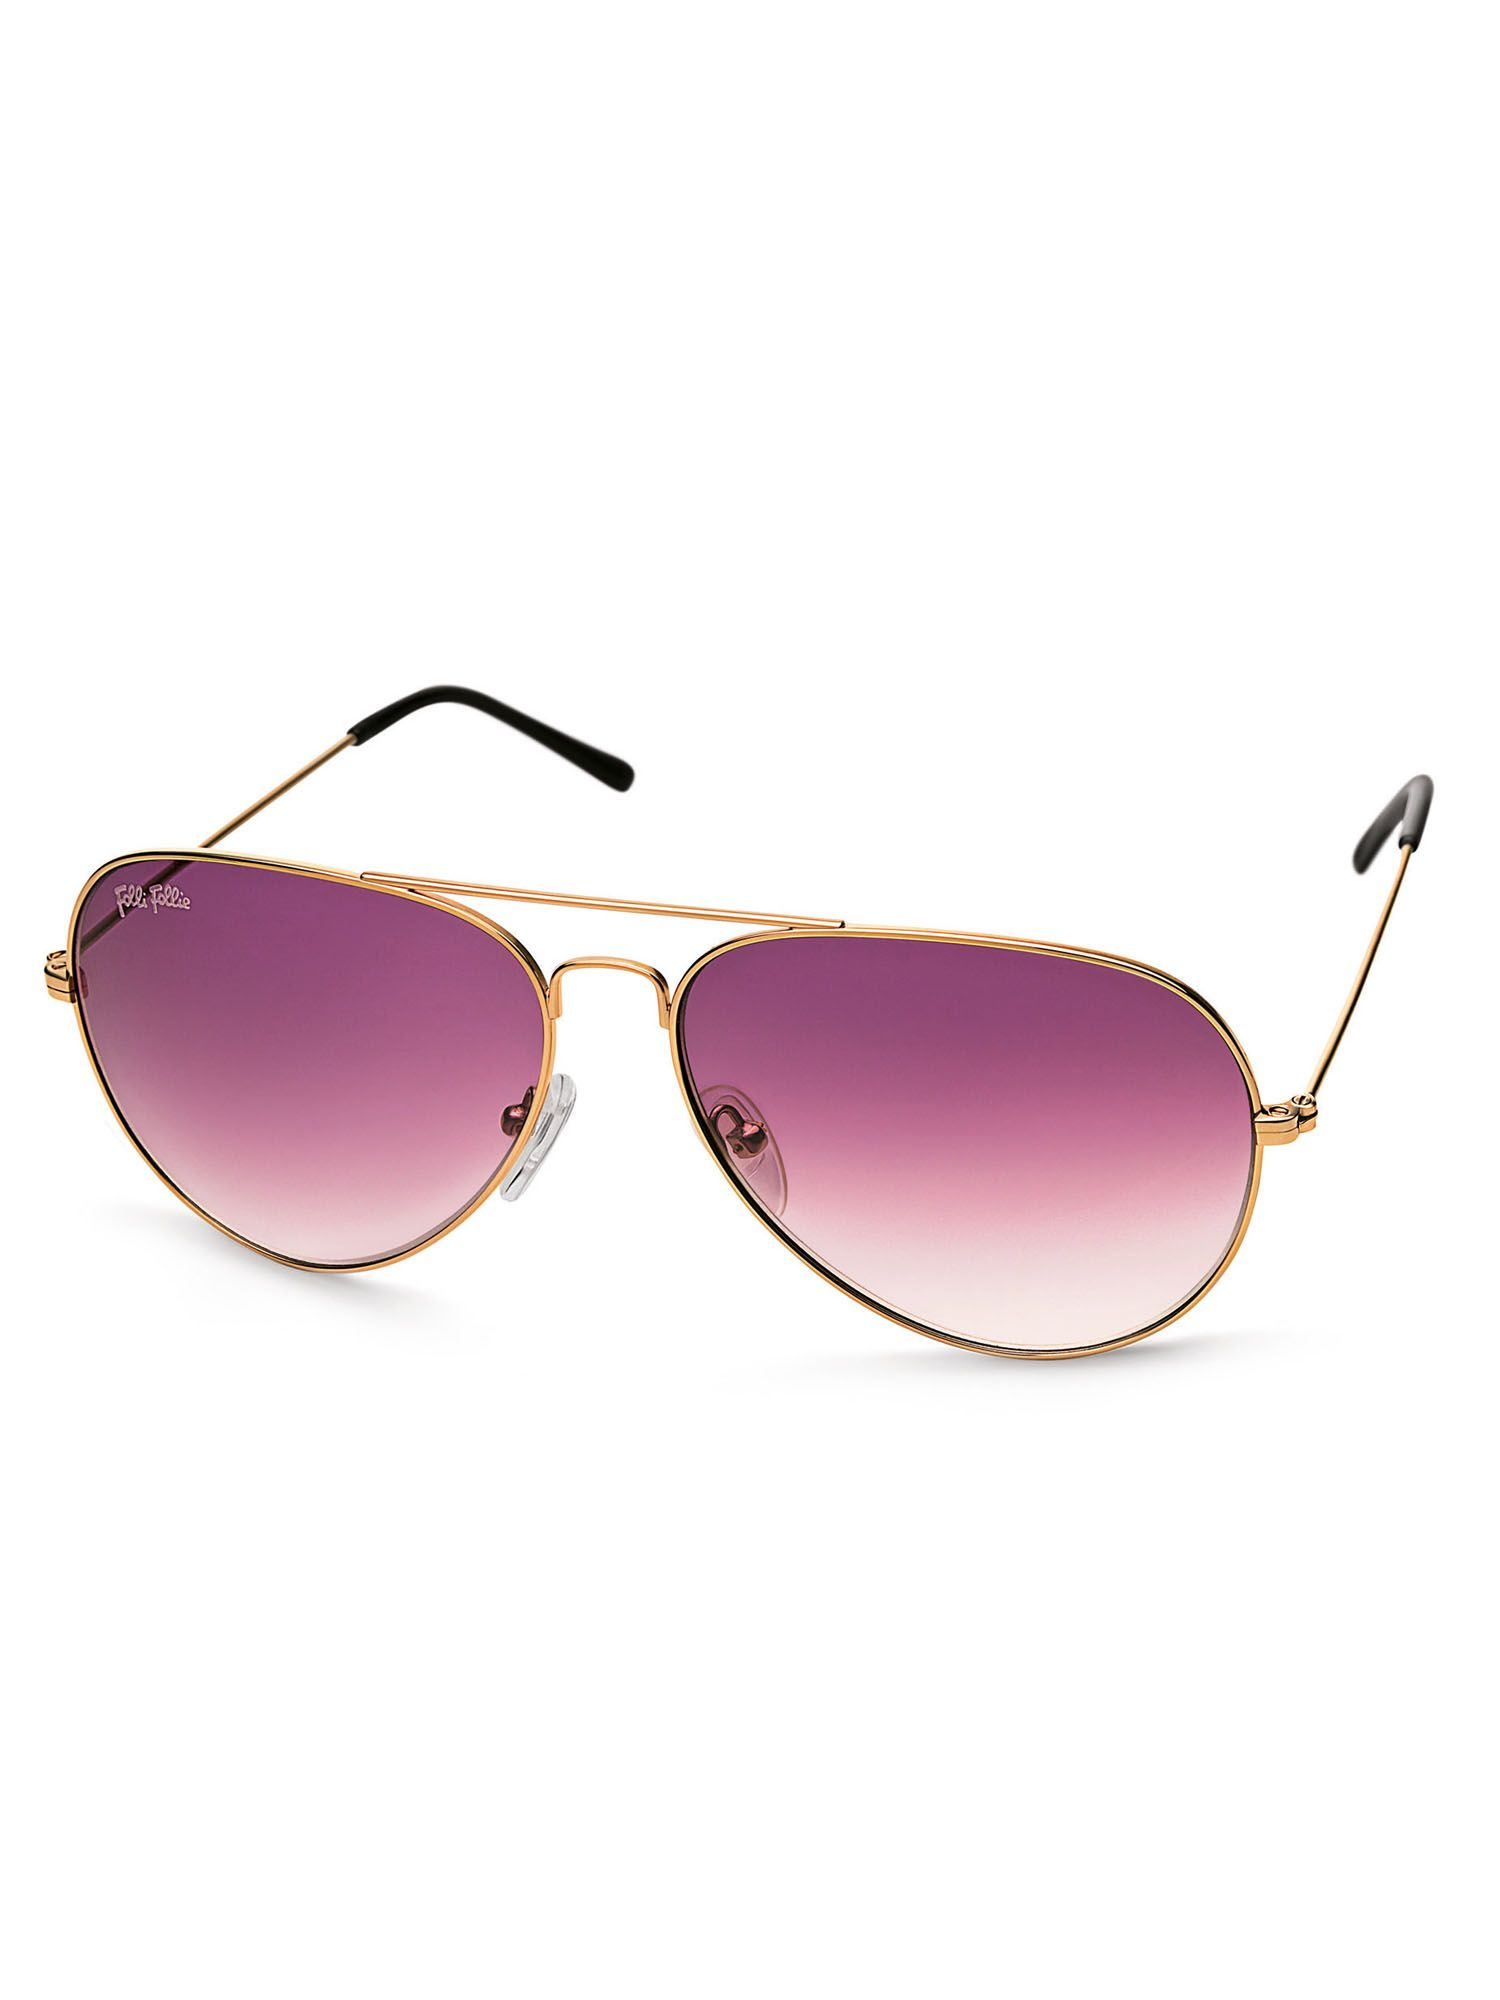 Ladies Purple Lensed Pilot Sunglasses